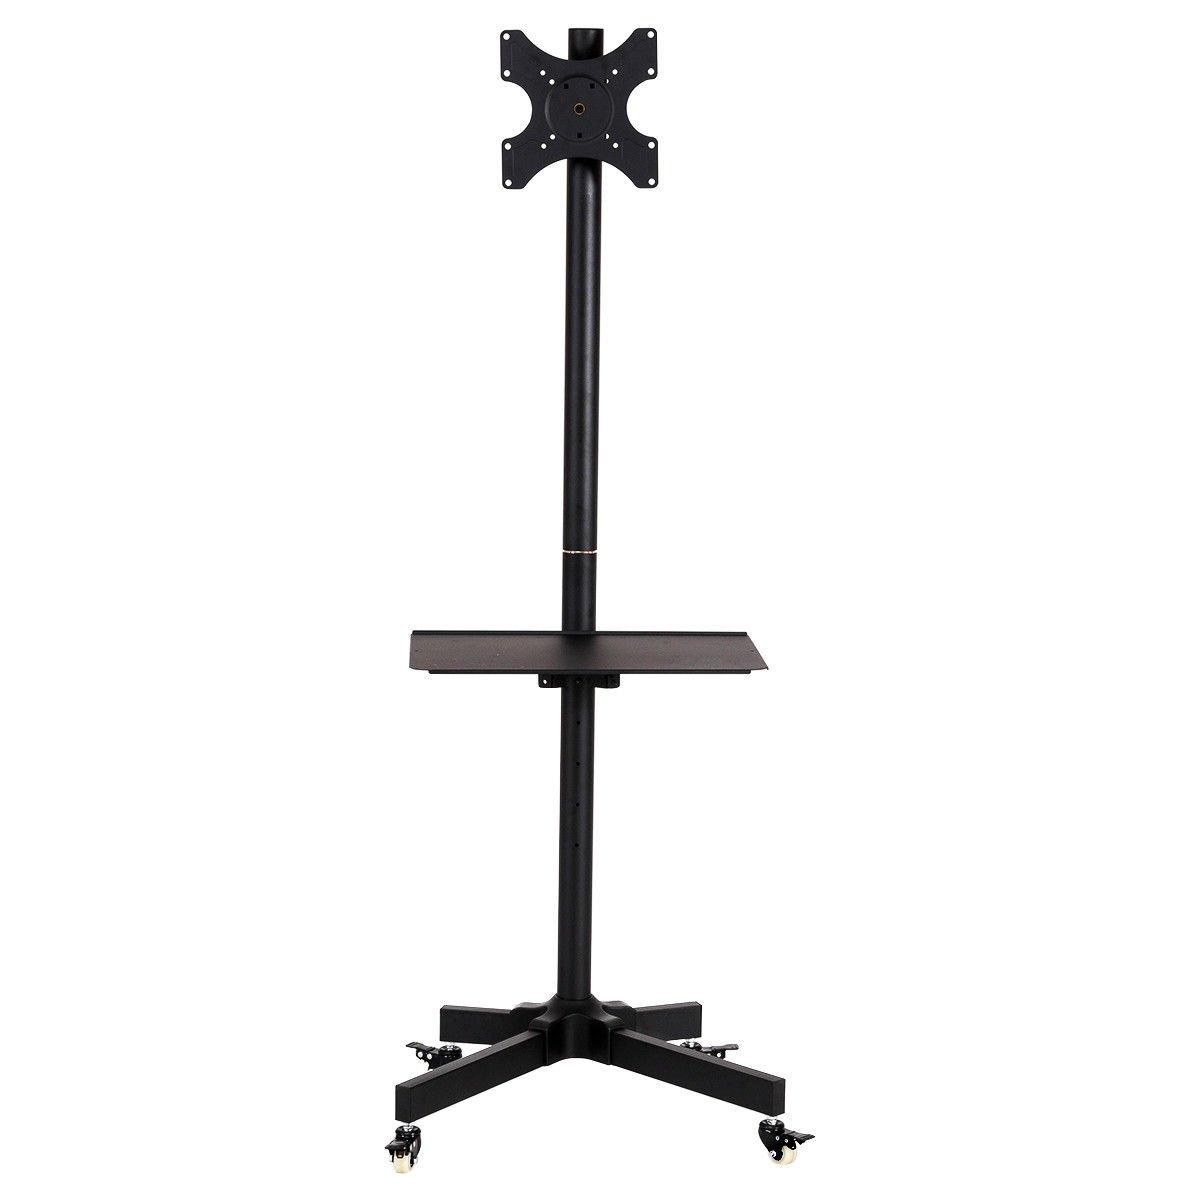 Strong Steel tube & cold rolled steel sheet TV Stand With Ebook